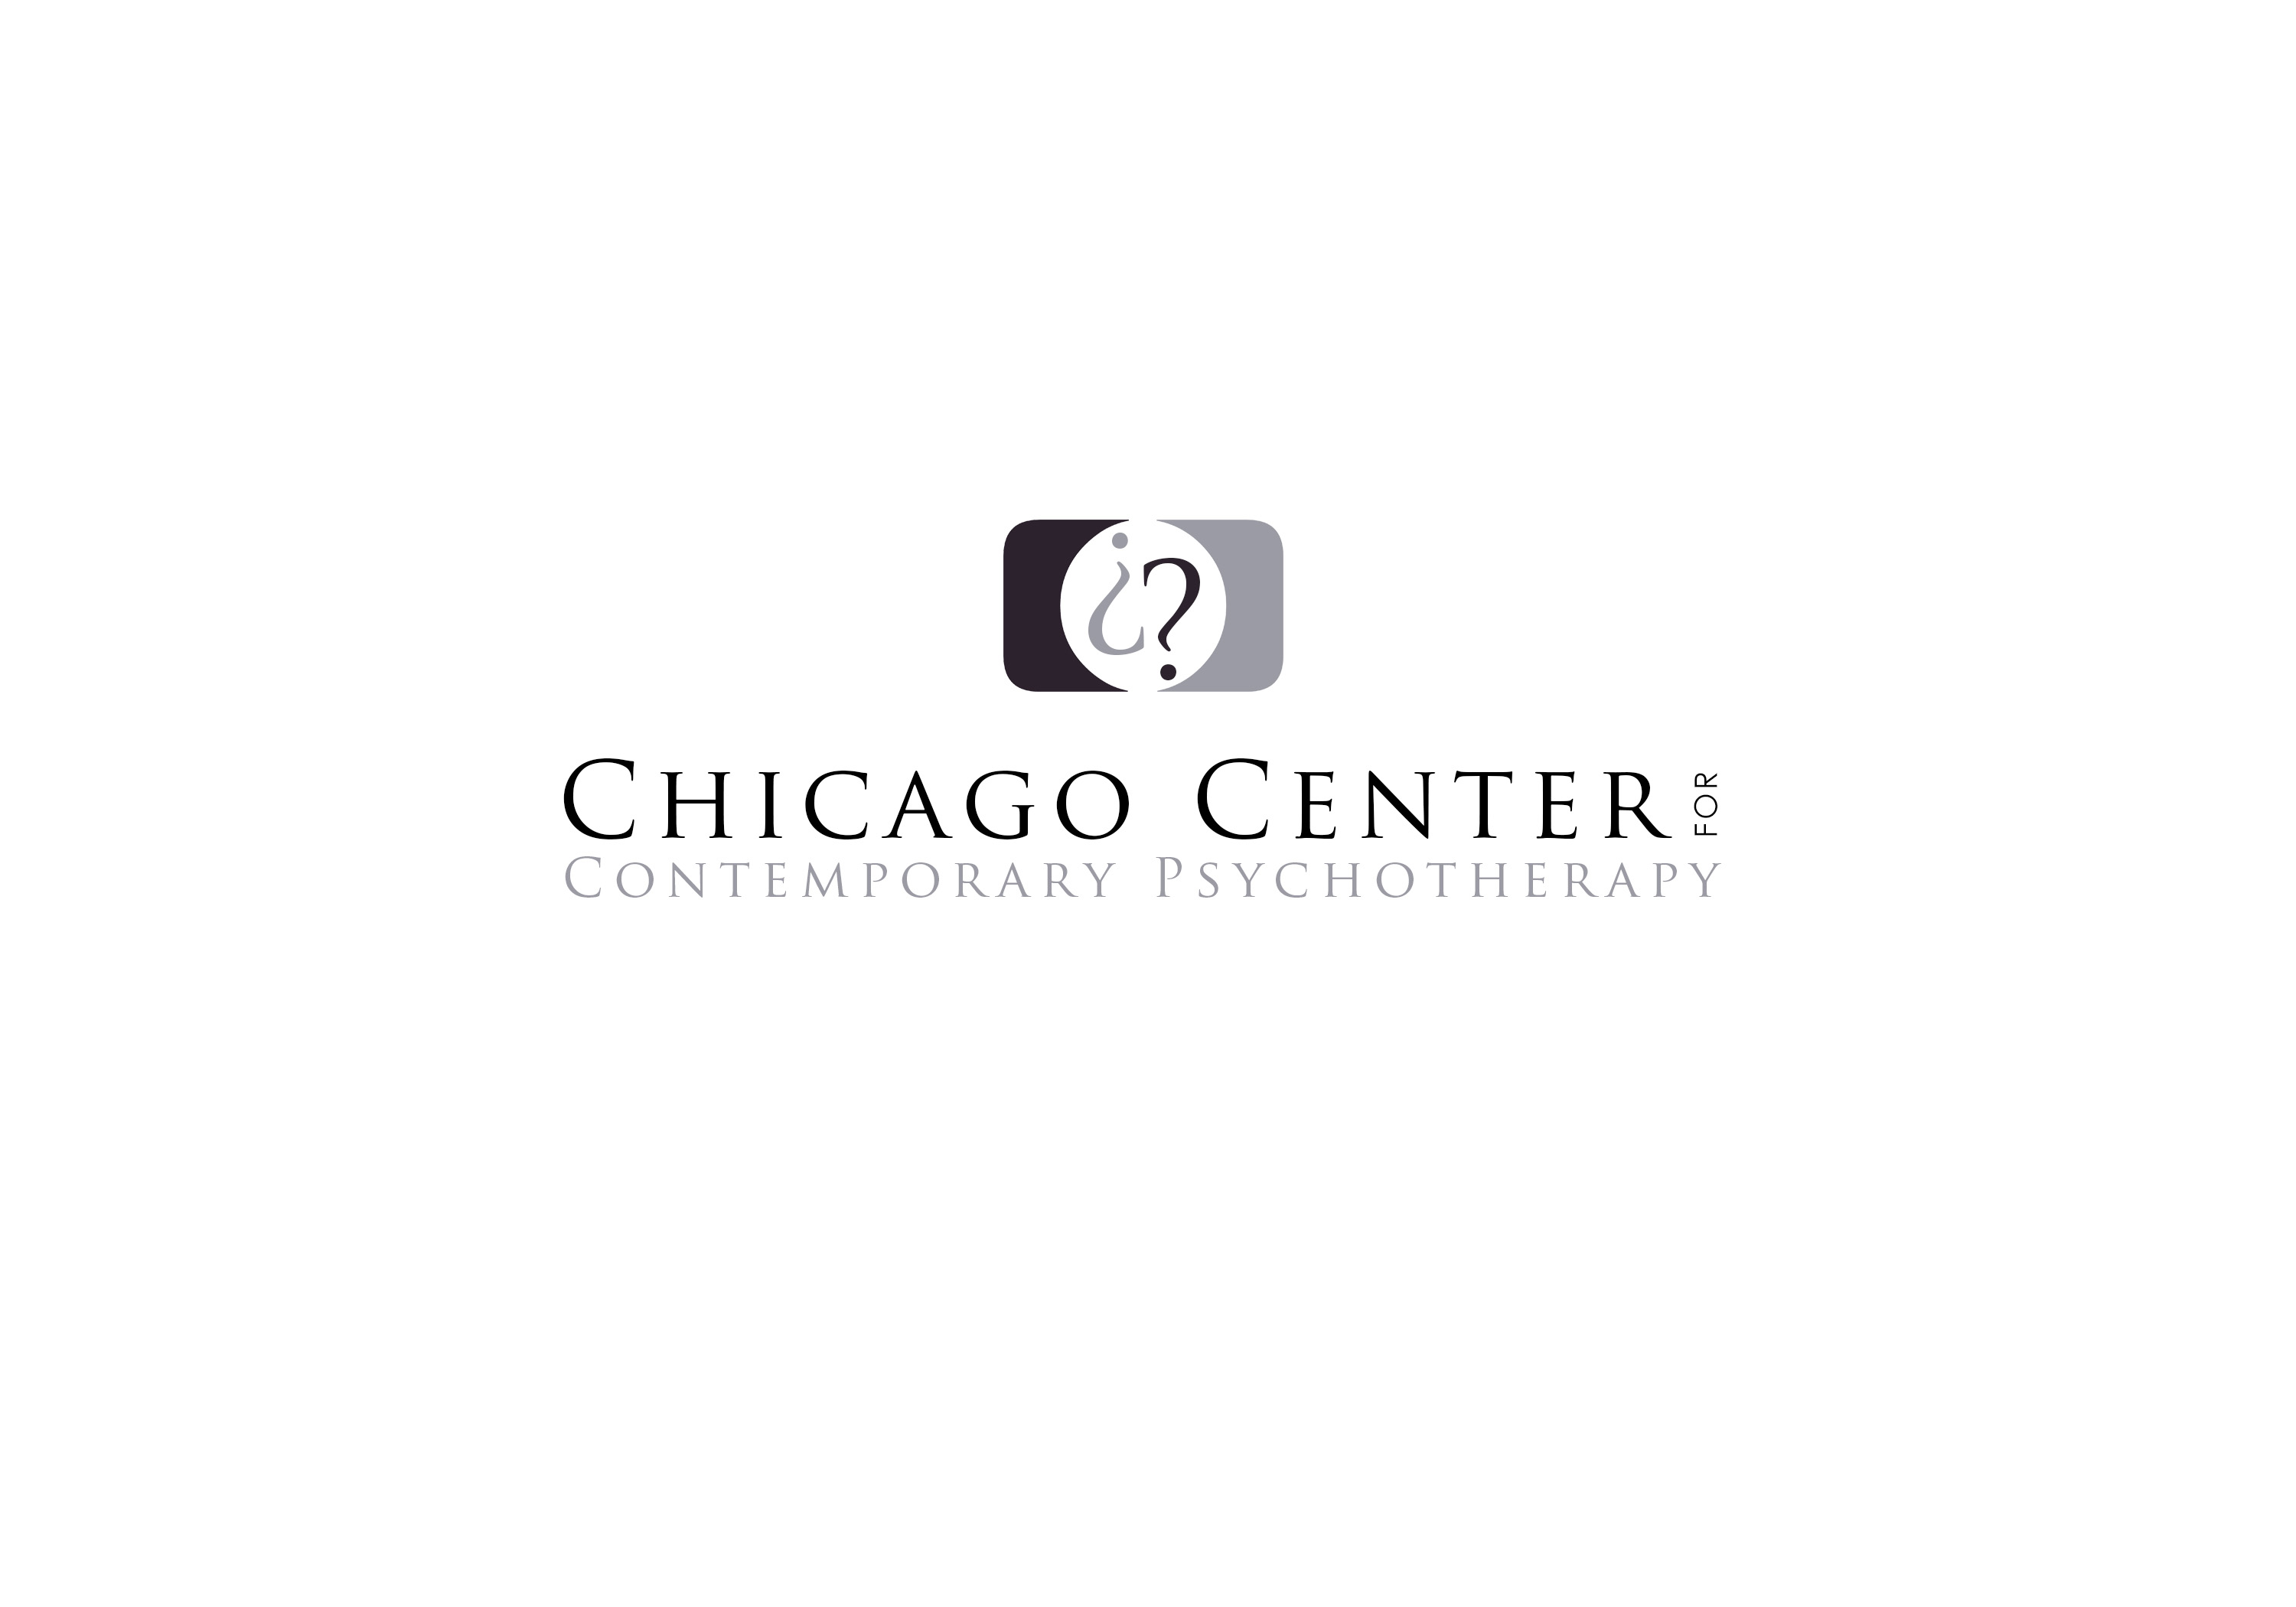 Logo Design by Colors Hub - Entry No. 20 in the Logo Design Contest Inspiring Logo Design for Chicago Center for Contemporary Psychotherapy.